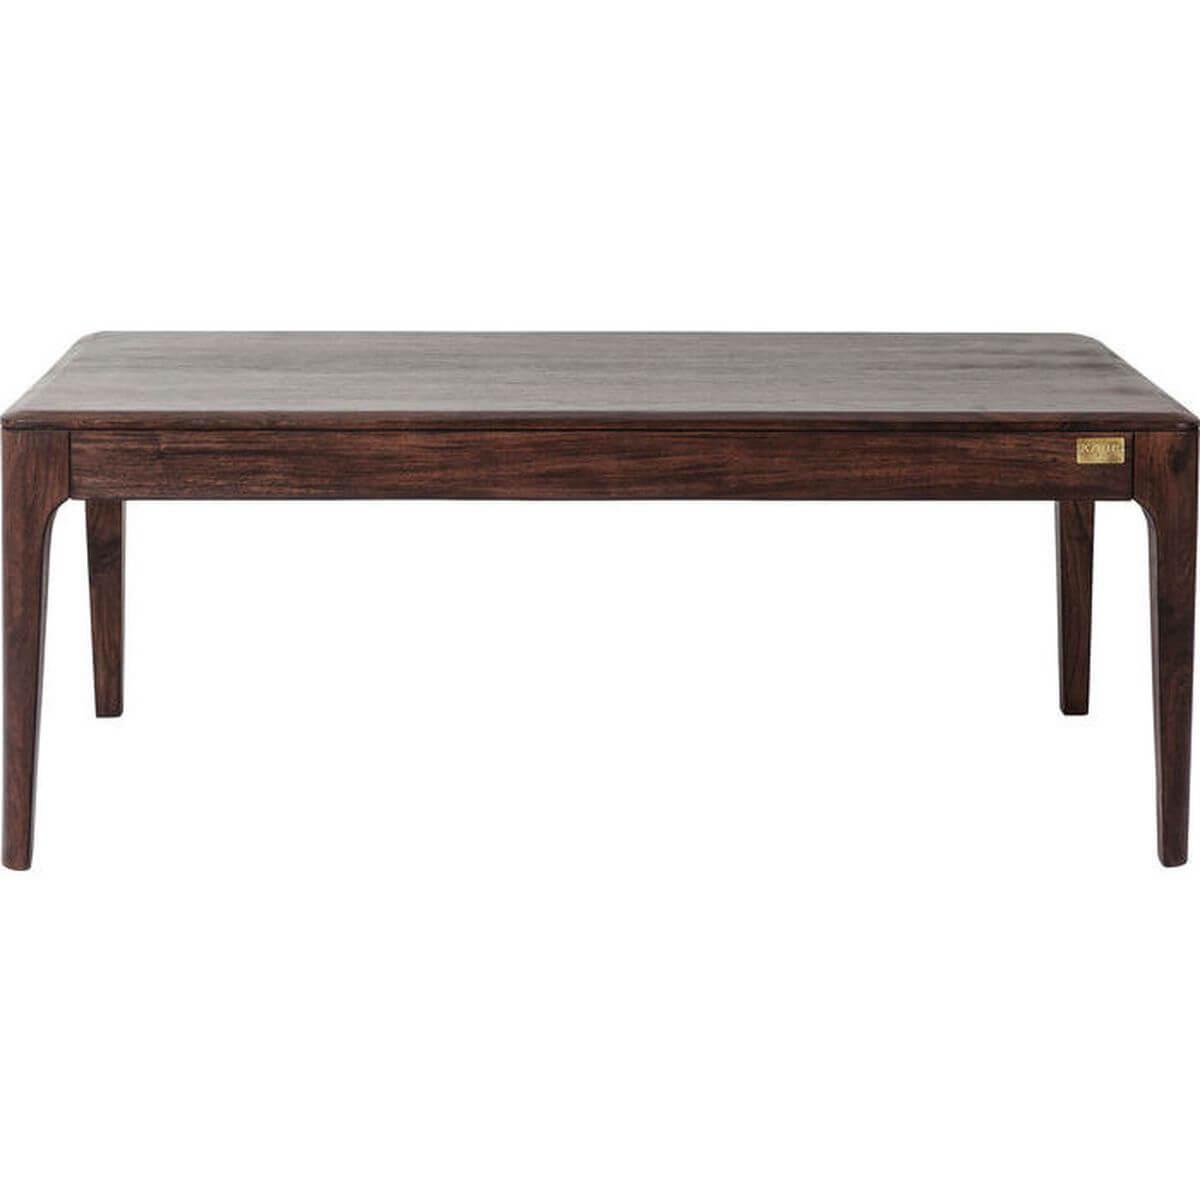 Table basse Brooklyn Walnut Kare Design 115x60cm